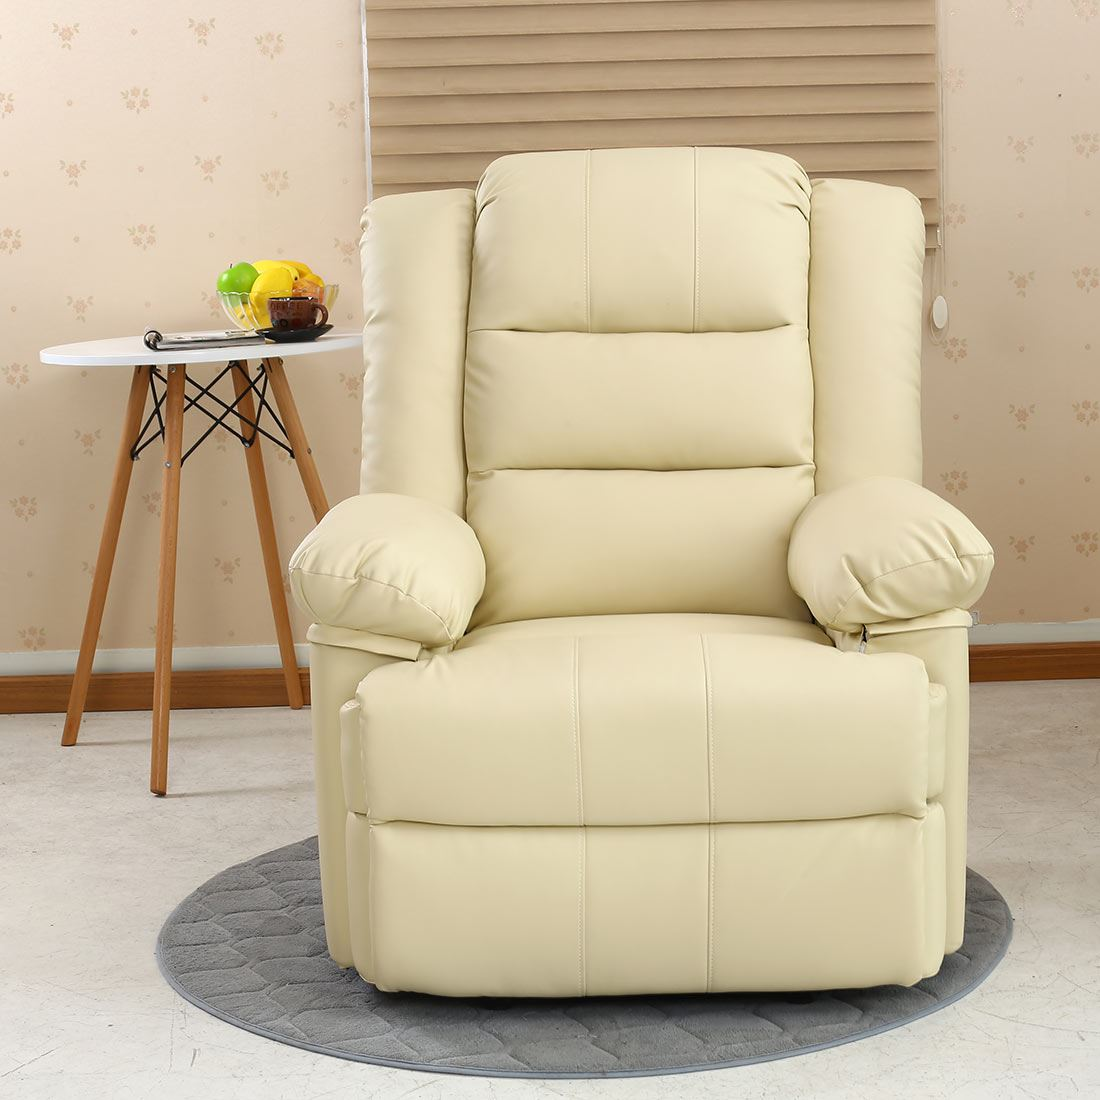 LOXLEY CREAM LEATHER RECLINER ARMCHAIR SOFA HOME LOUNGE ...